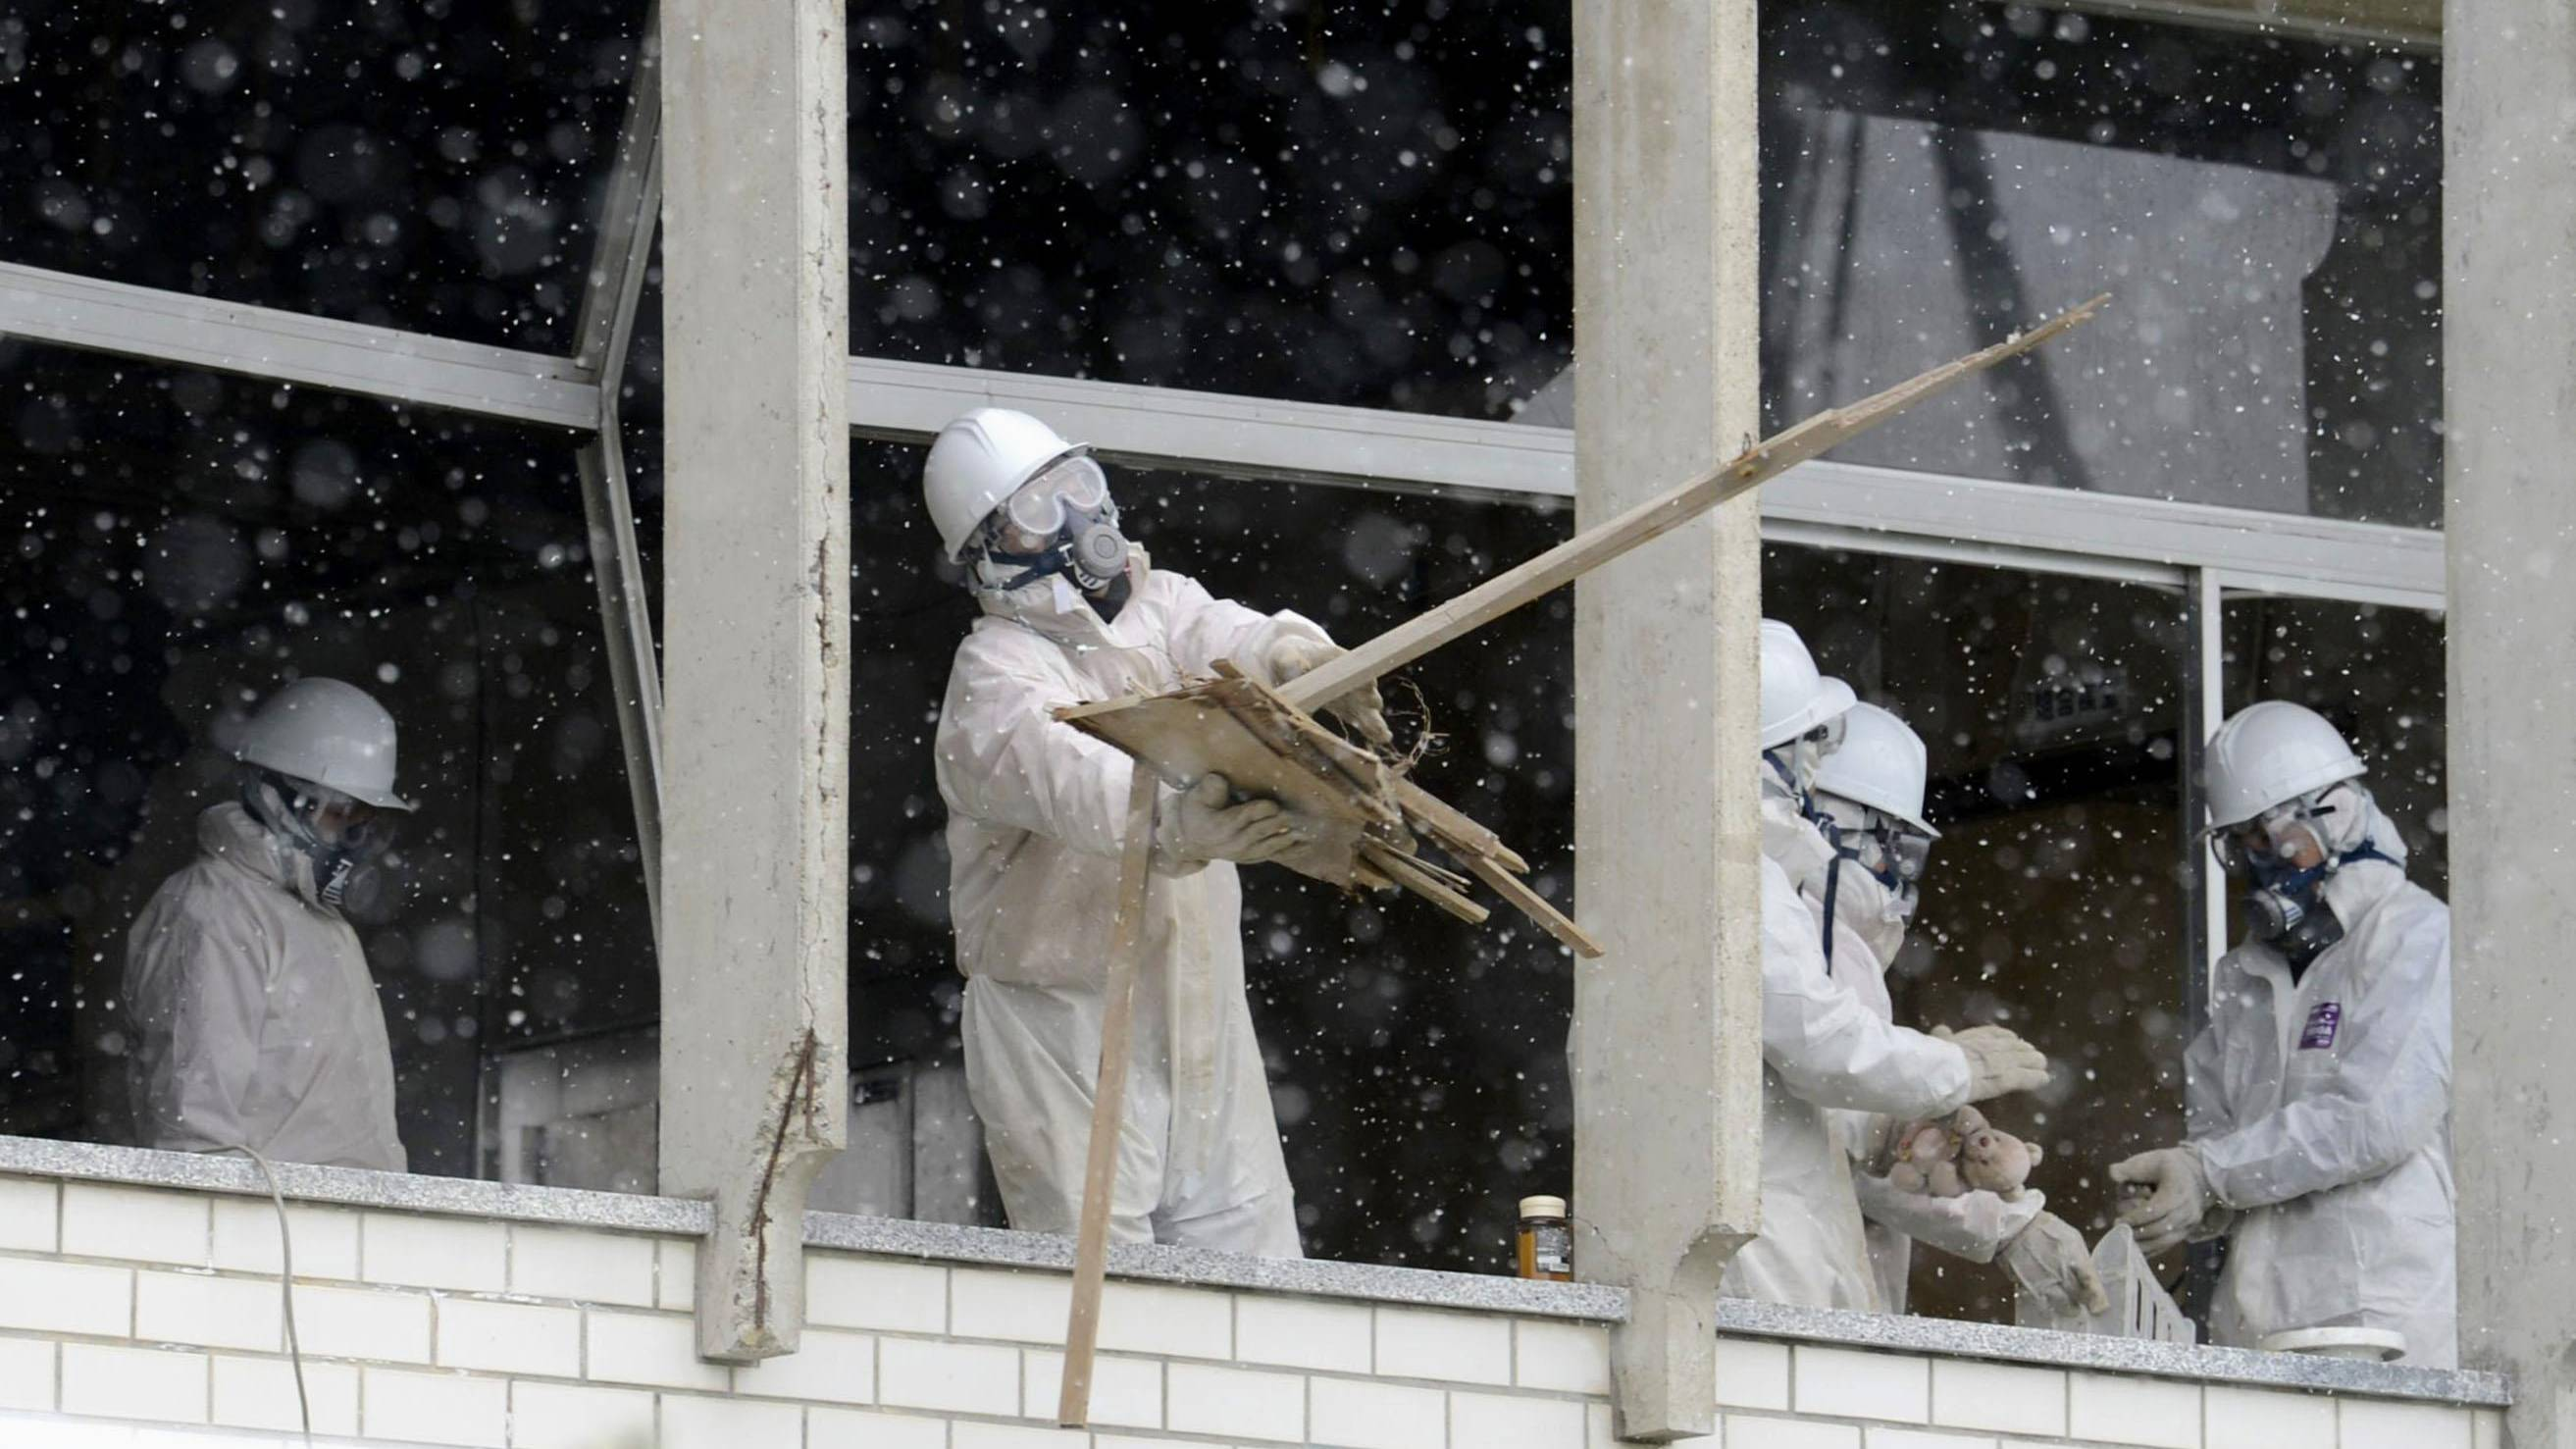 Search for remains of disaster victims conducted in Iwate, Miyagi